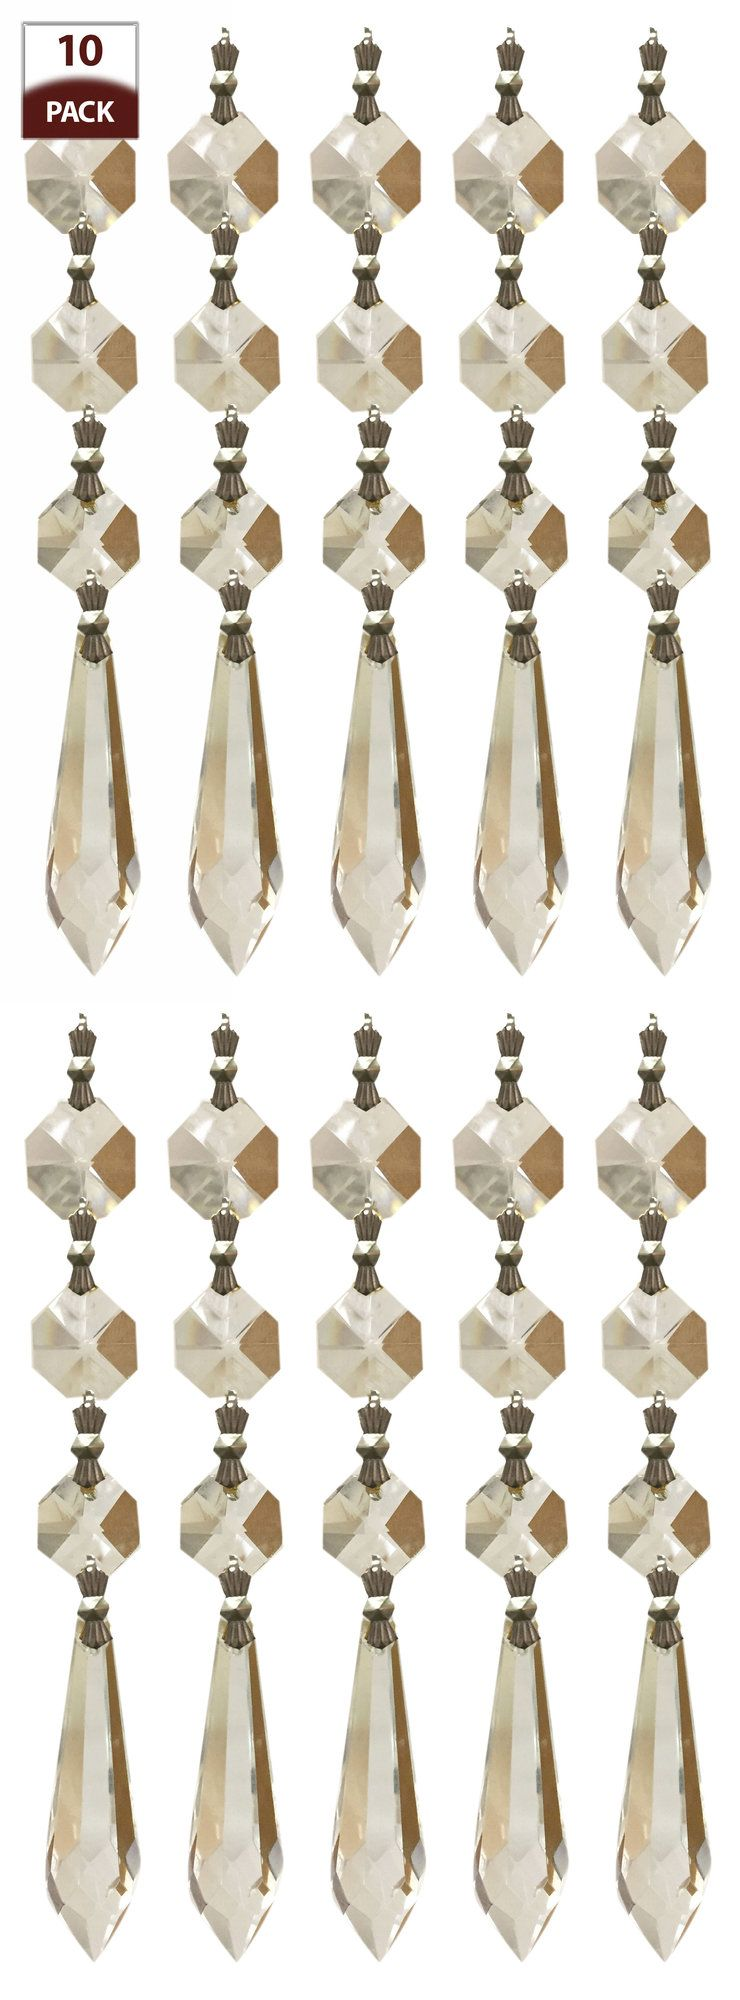 Chandelier replacement crystal prism icicle u drop products chandelier replacement crystal prism icicle u drop arubaitofo Gallery